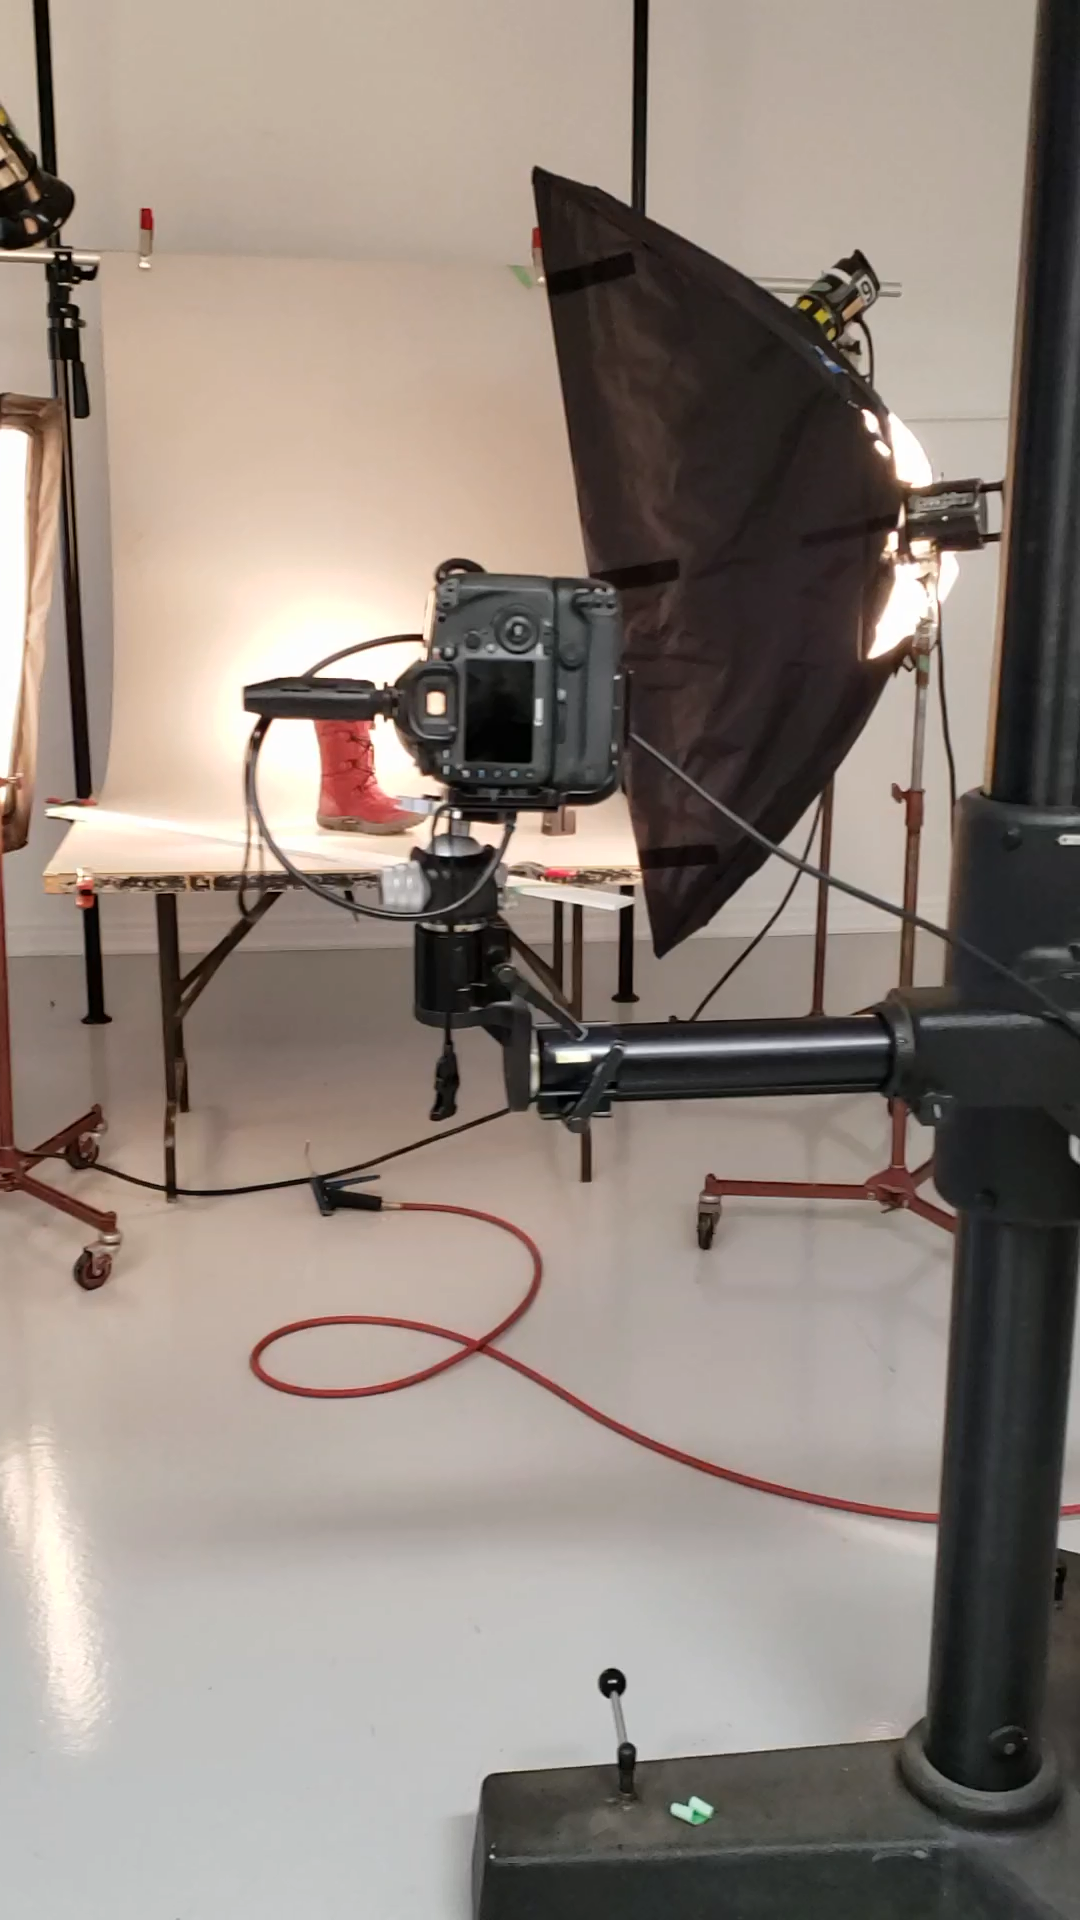 A quick behind the scenes shot of some product photography going on in the studio.   #photography #behindthescenes #productphotography #camera #setup